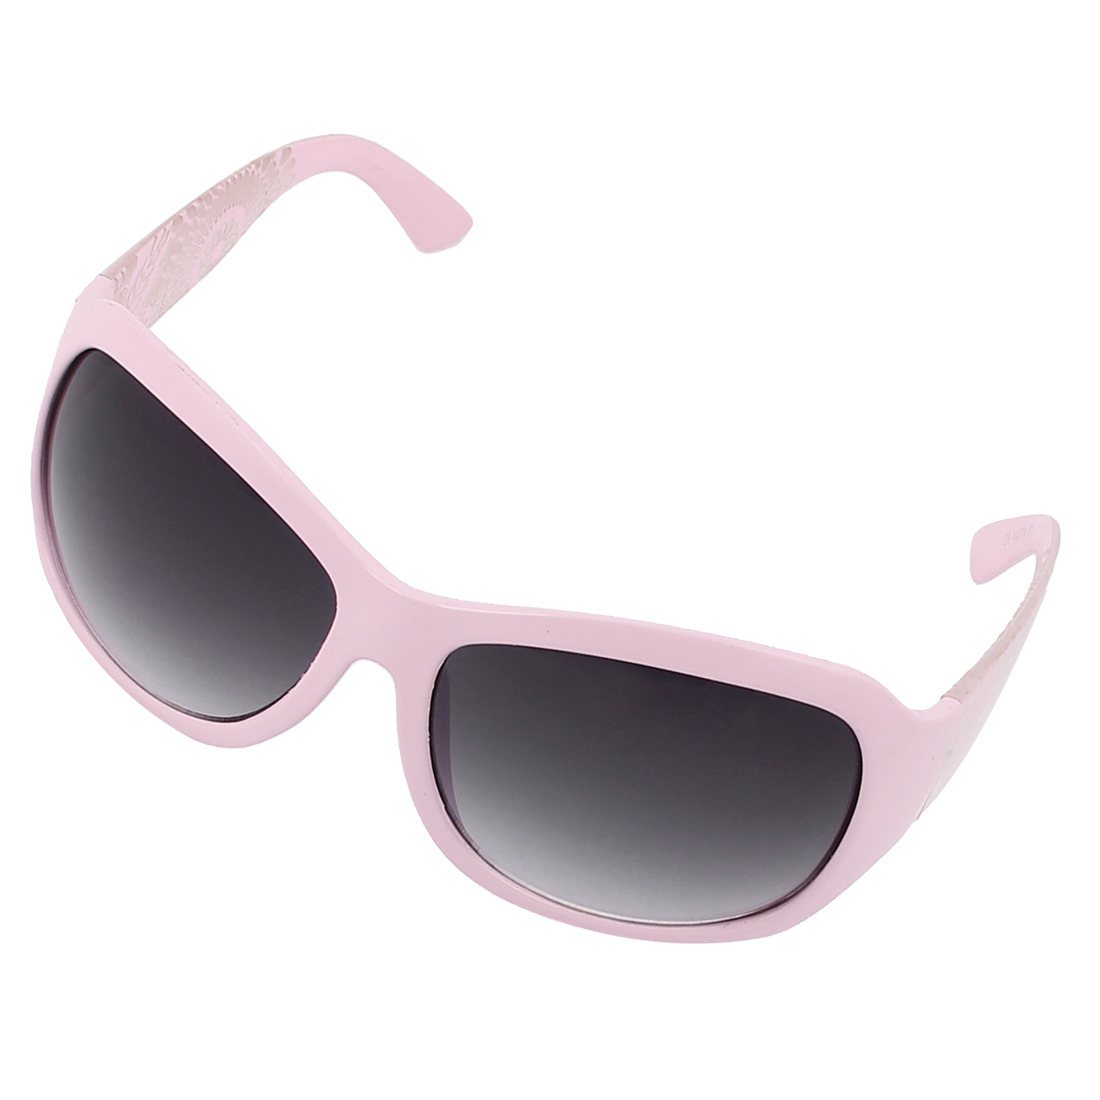 Plastic Wide Floral Frame Sun Protection Sunglasses Shade Glasses Pink